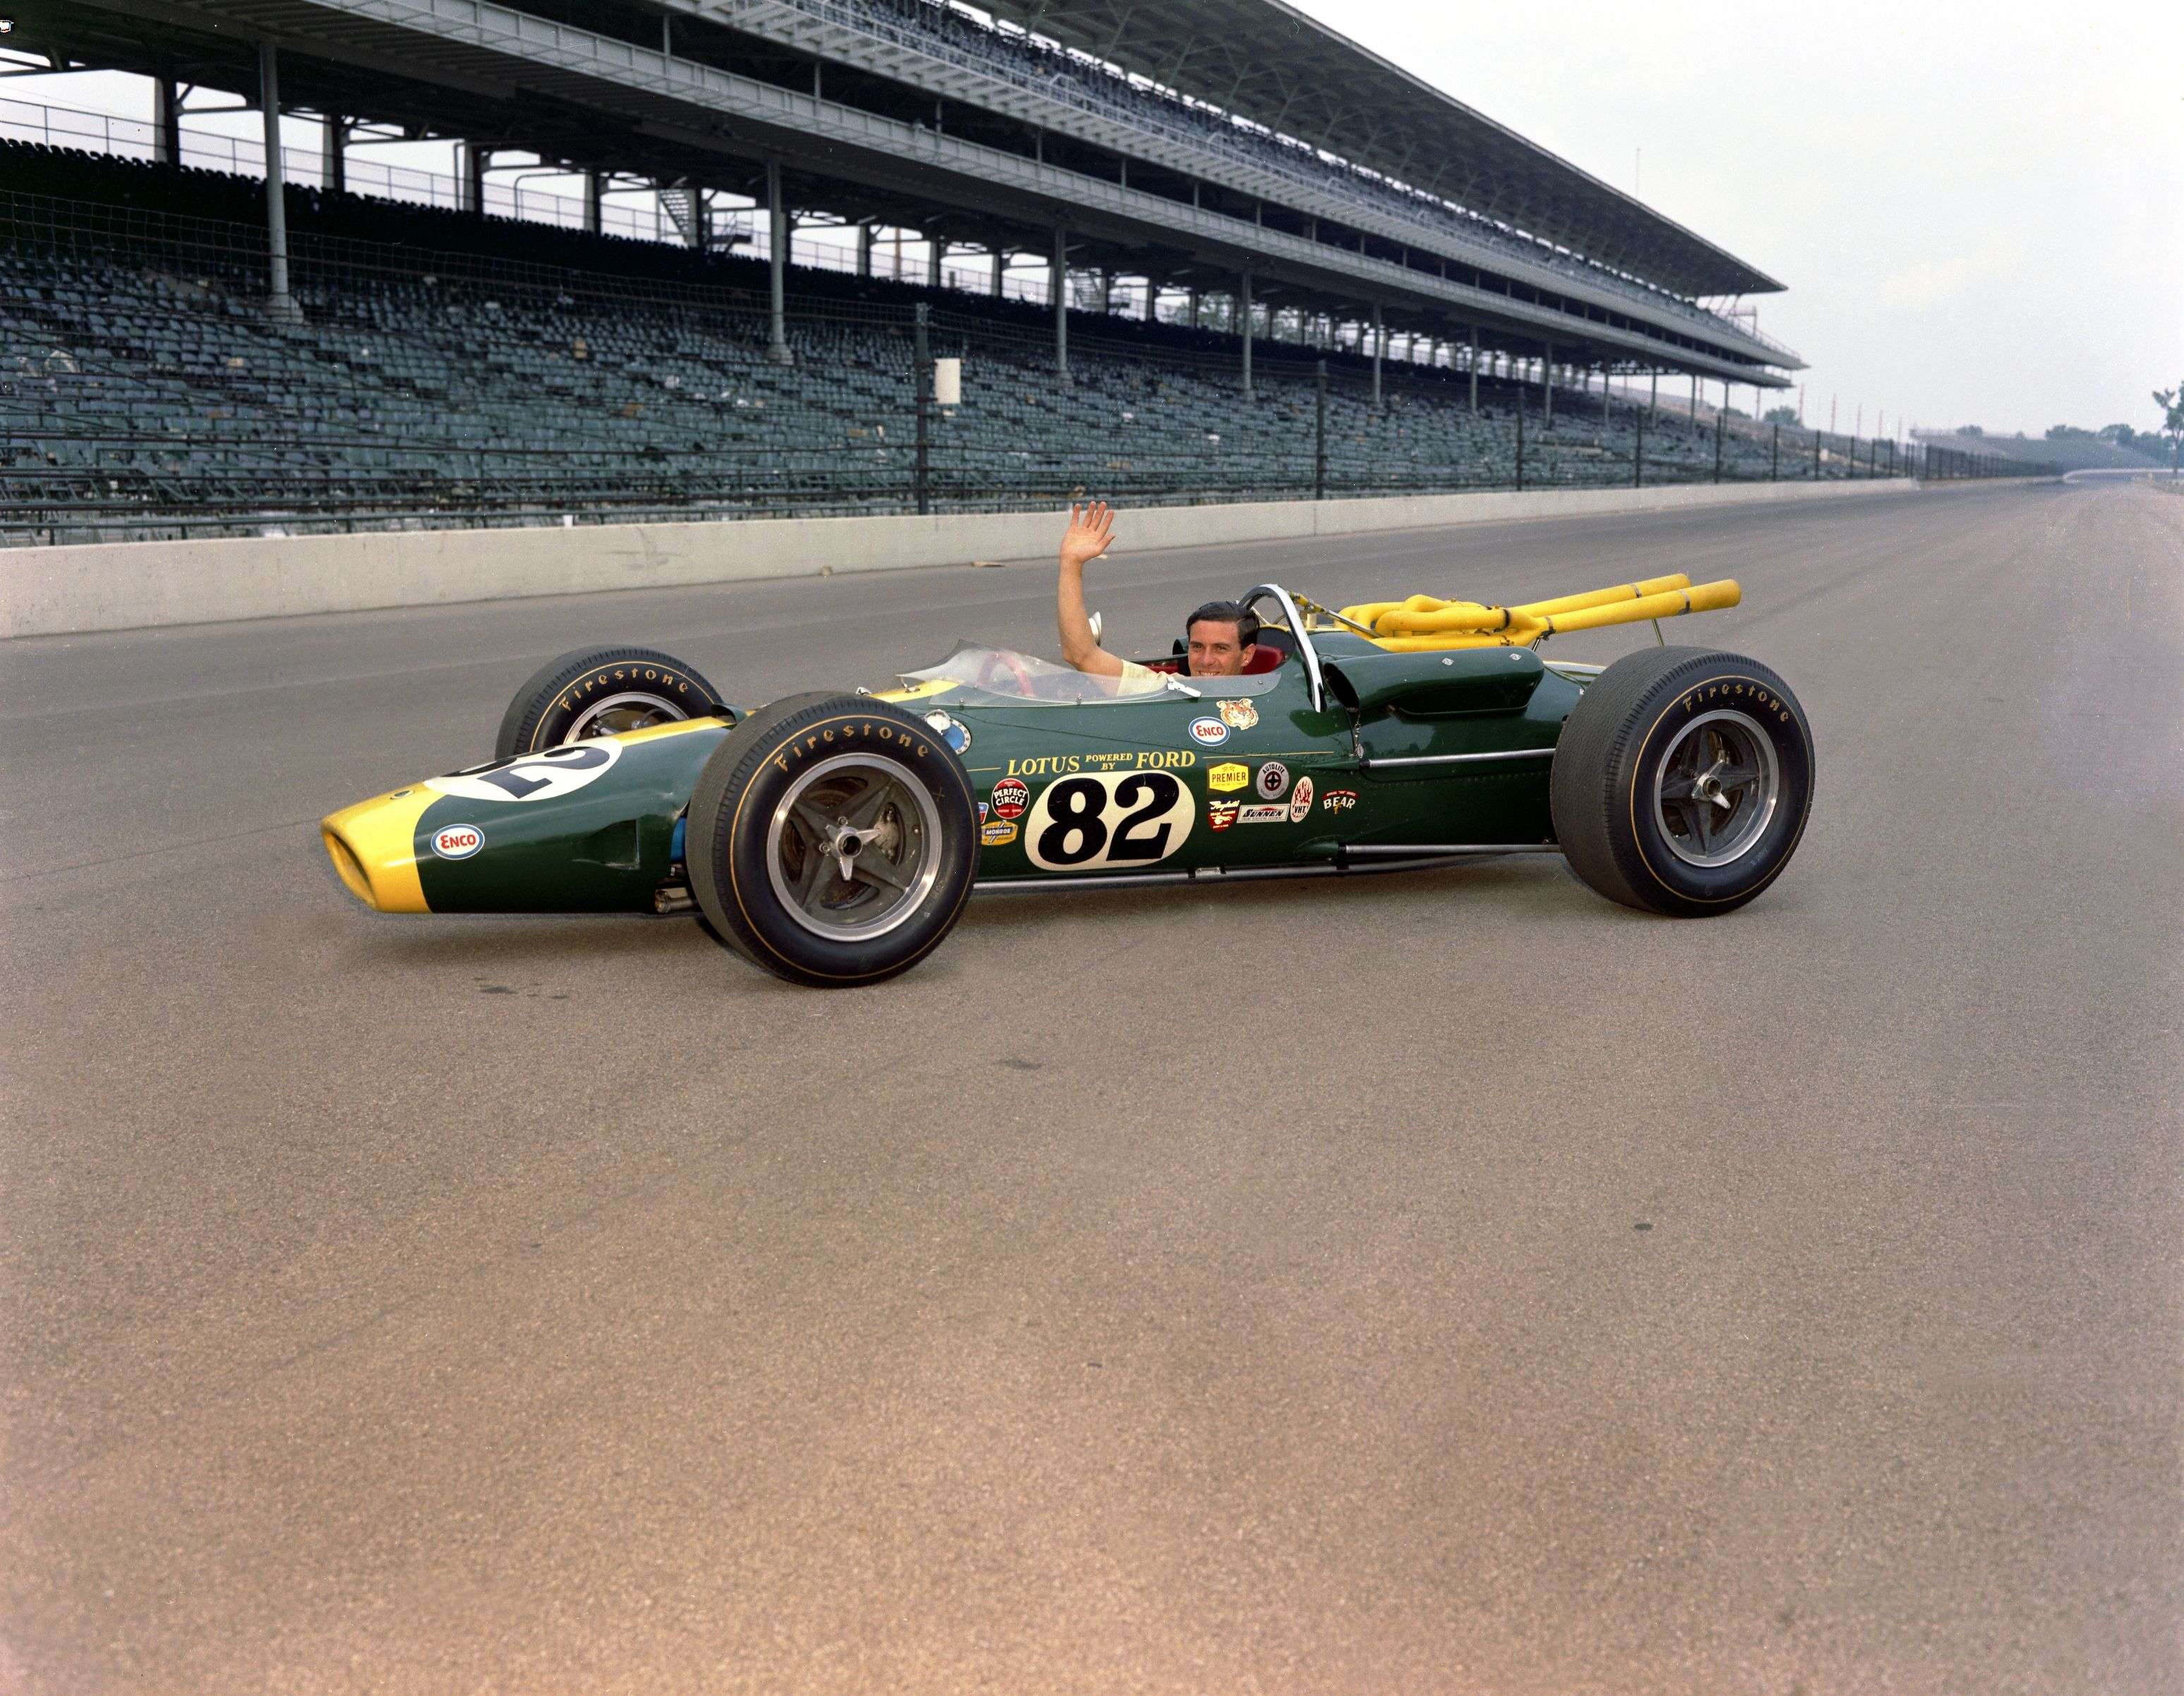 Vintage Indianapolis 500 Racecars to Make Brickyard Return ...